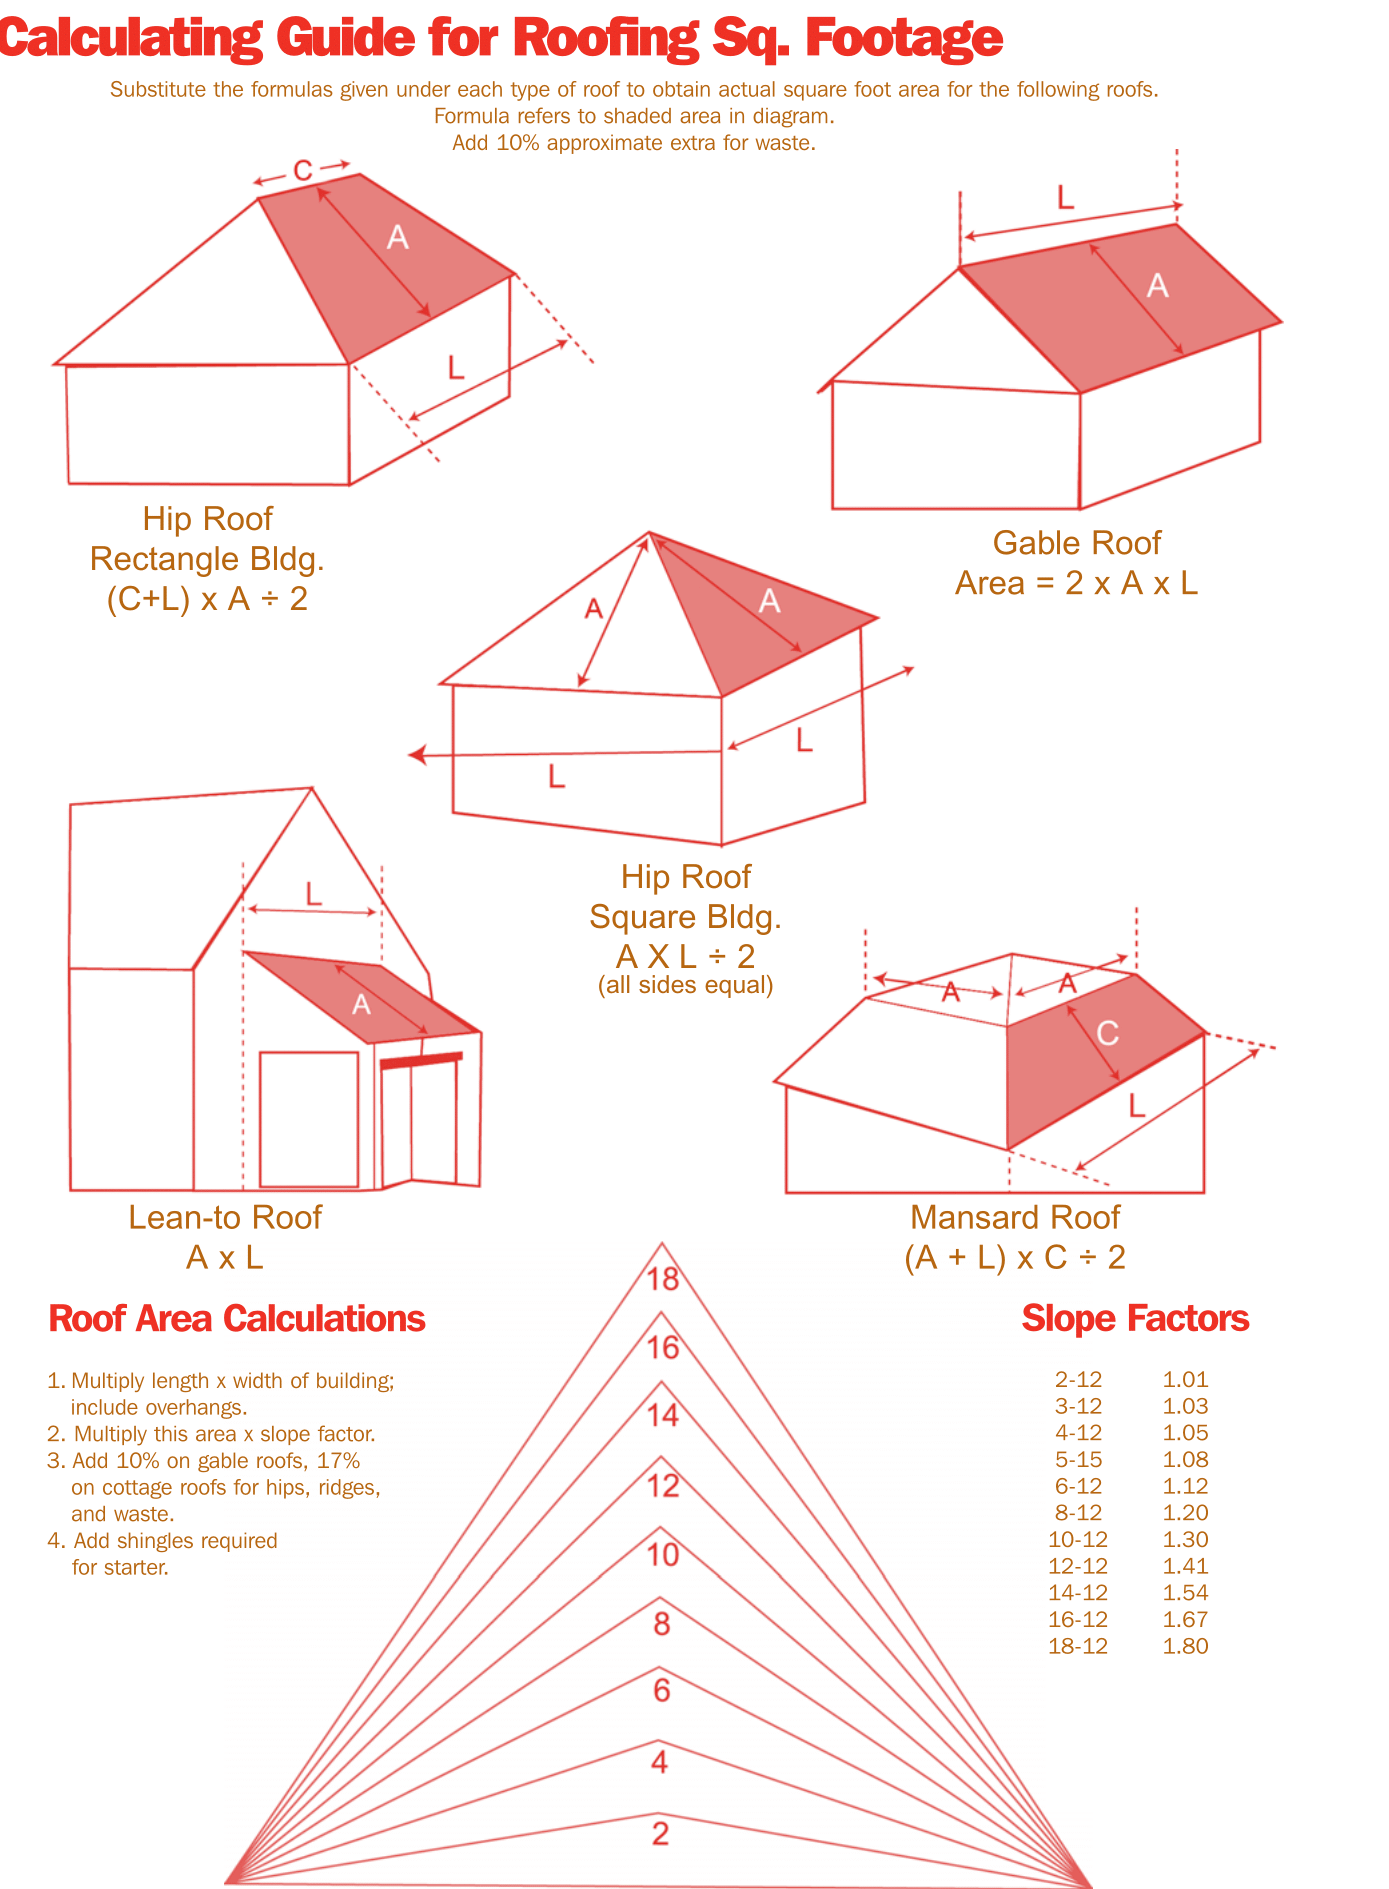 How to Measure and Estimate a Roof Like a Pro? - DIY Guide with ...